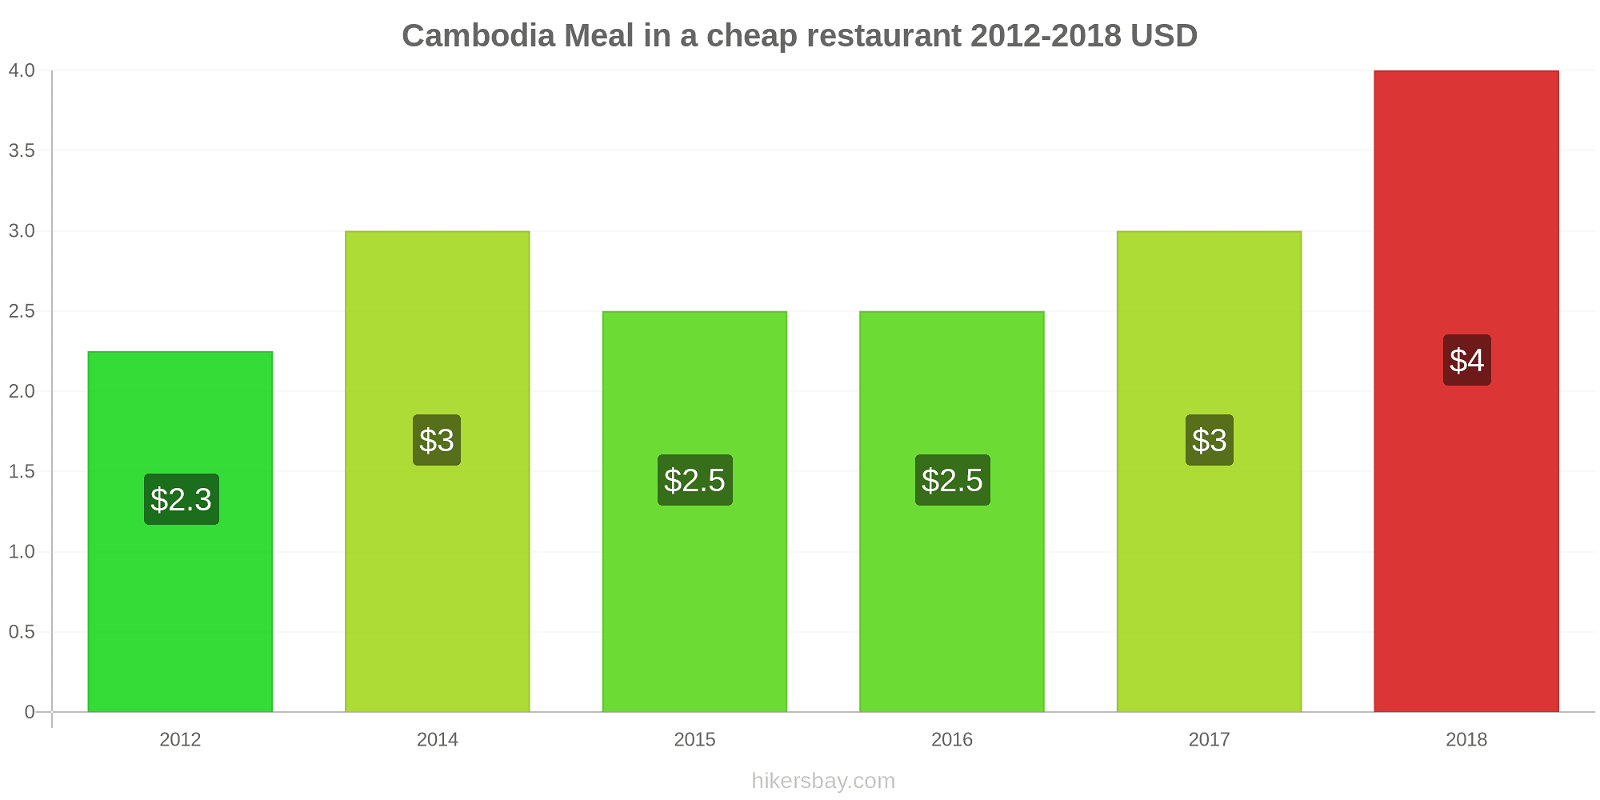 Cambodia price changes Meal in a cheap restaurant hikersbay.com